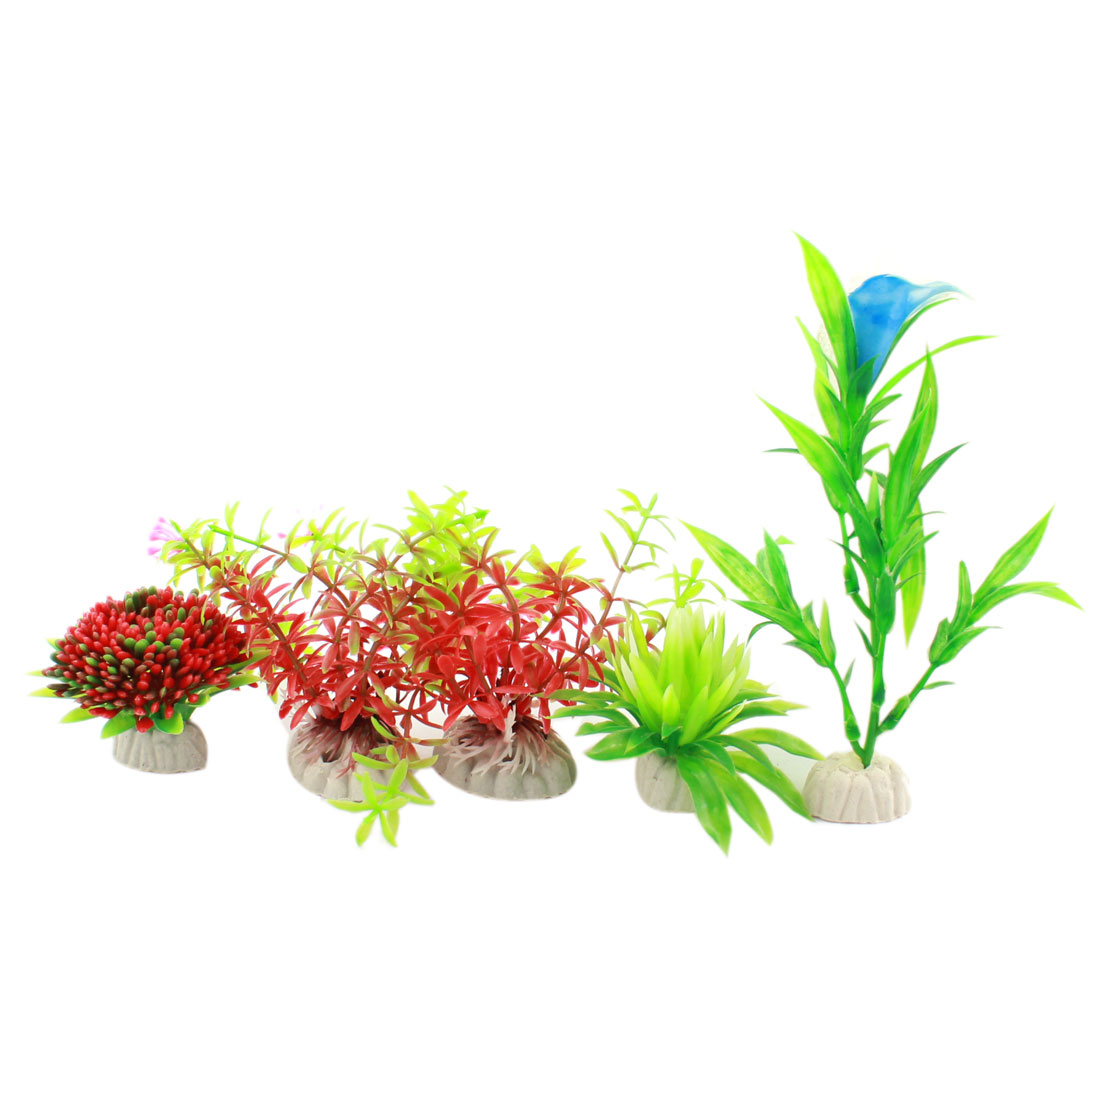 5pcs Plastic Emulational Flower Water Plants for Fish Tank